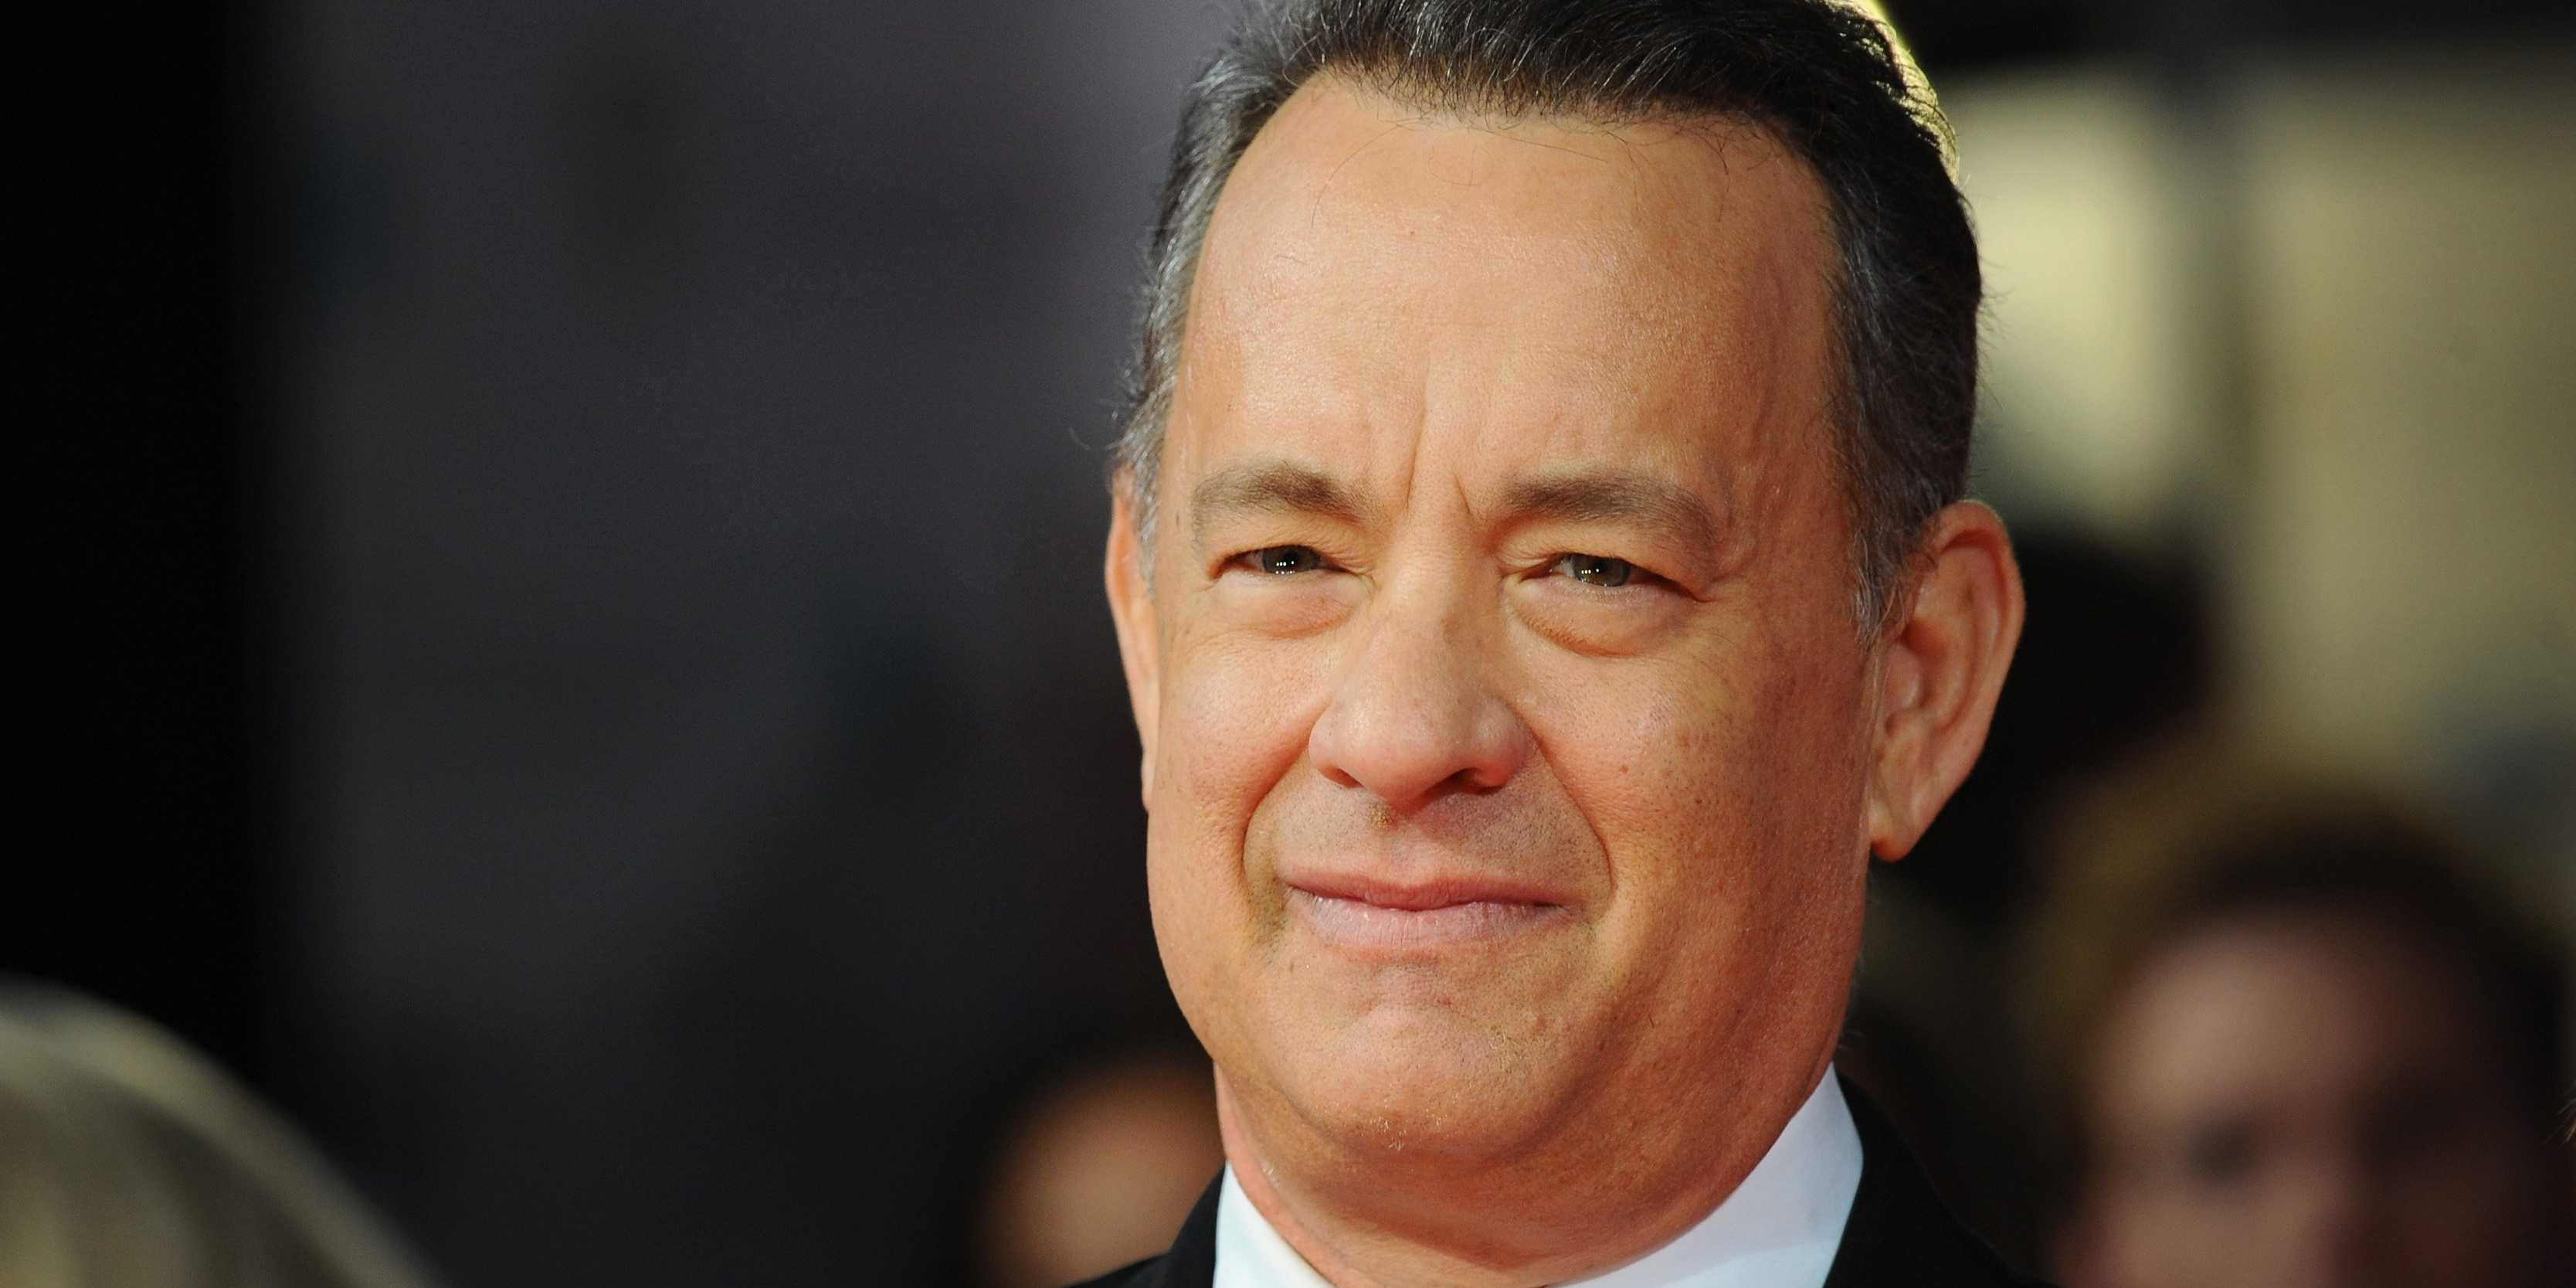 Tom Hanks and his wife Rita Wilson have tested positive for the novel coronavirus